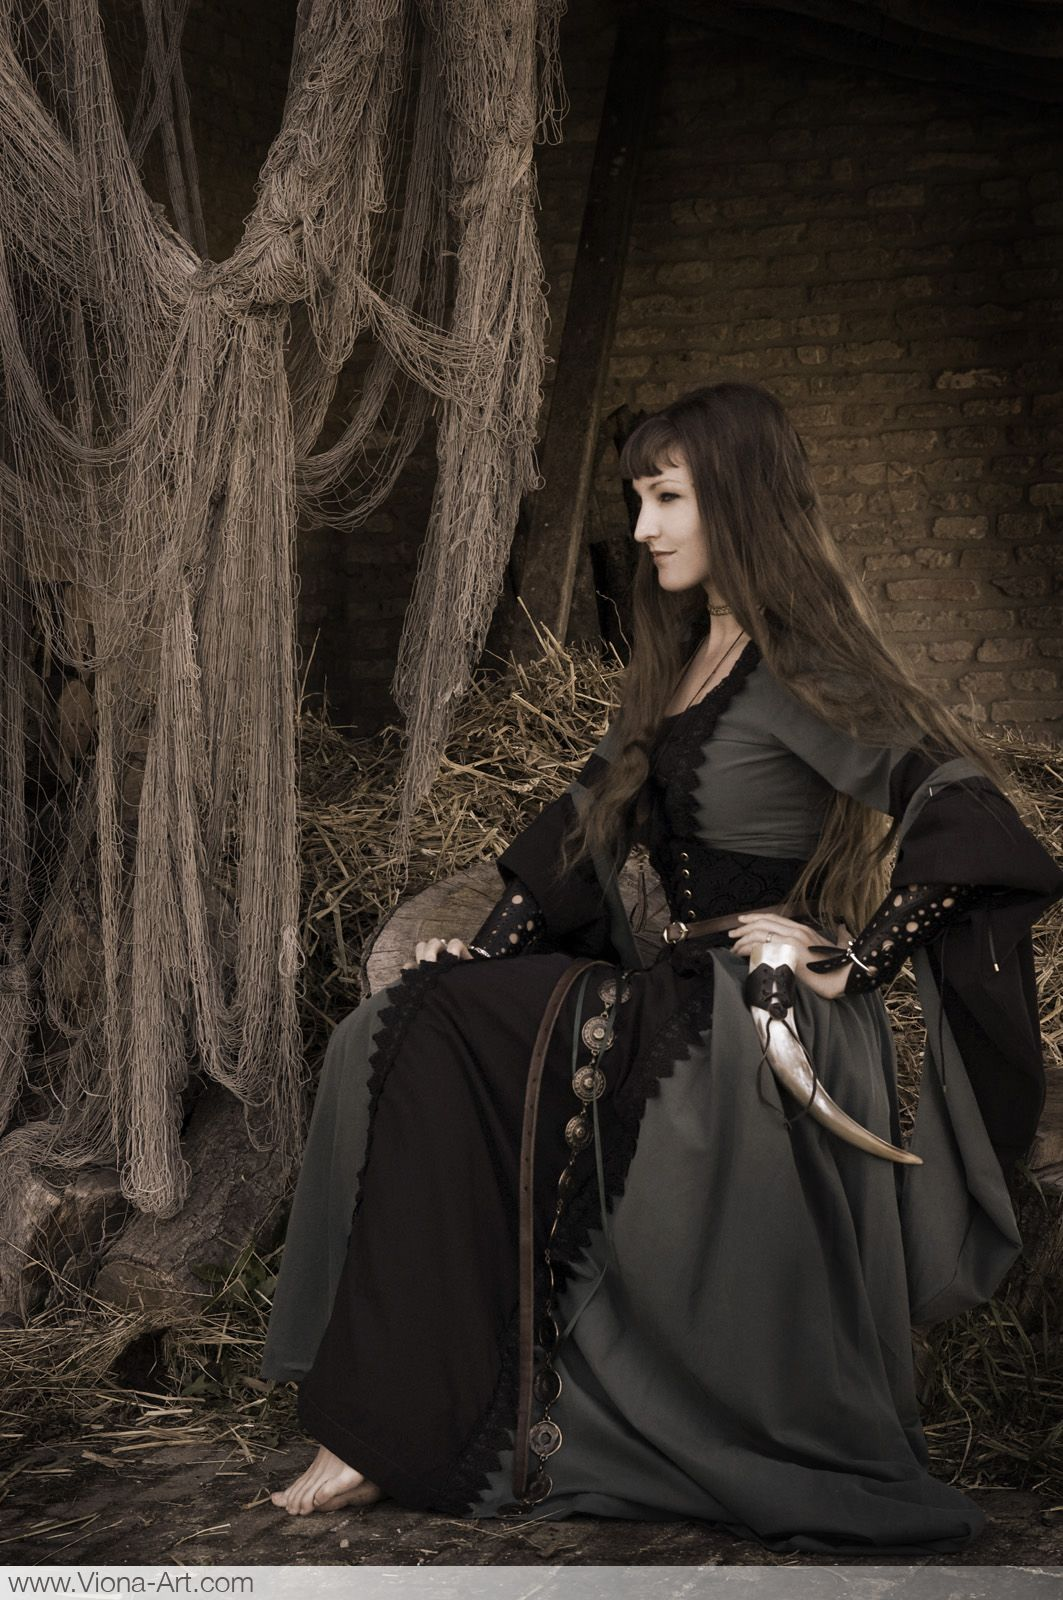 Pin by christine narine on costumes pinterest medieval costumes